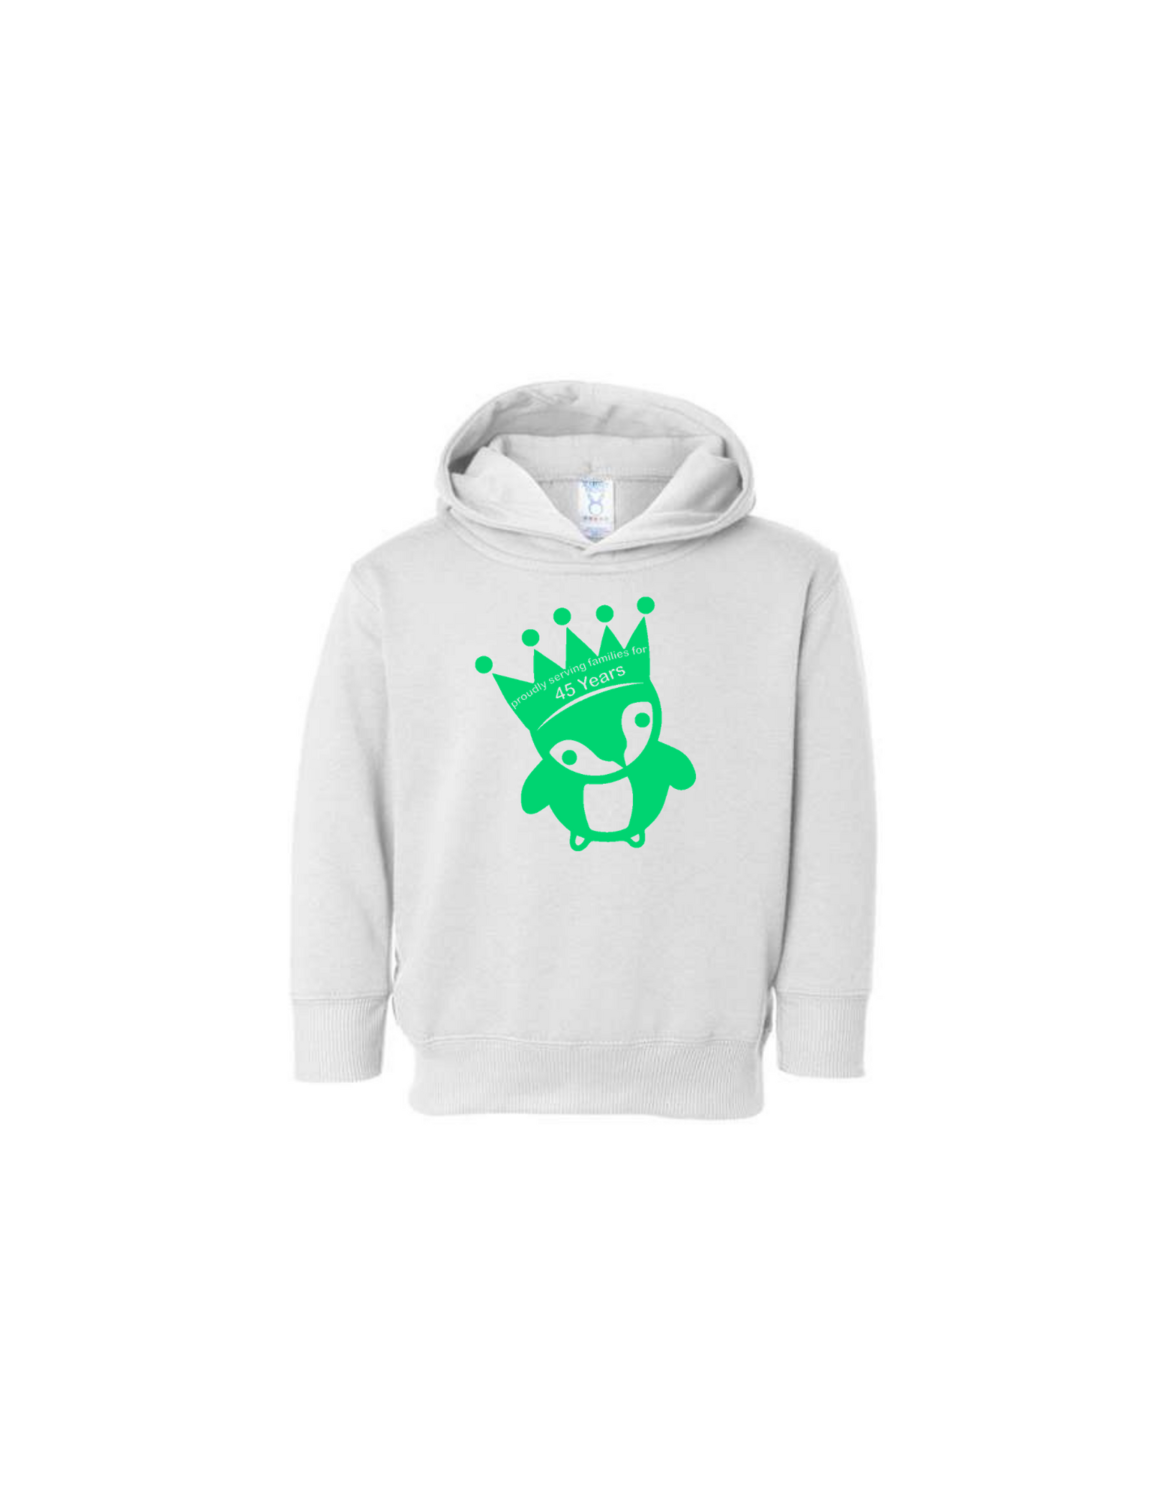 45th Infant/Toddler Hoodie